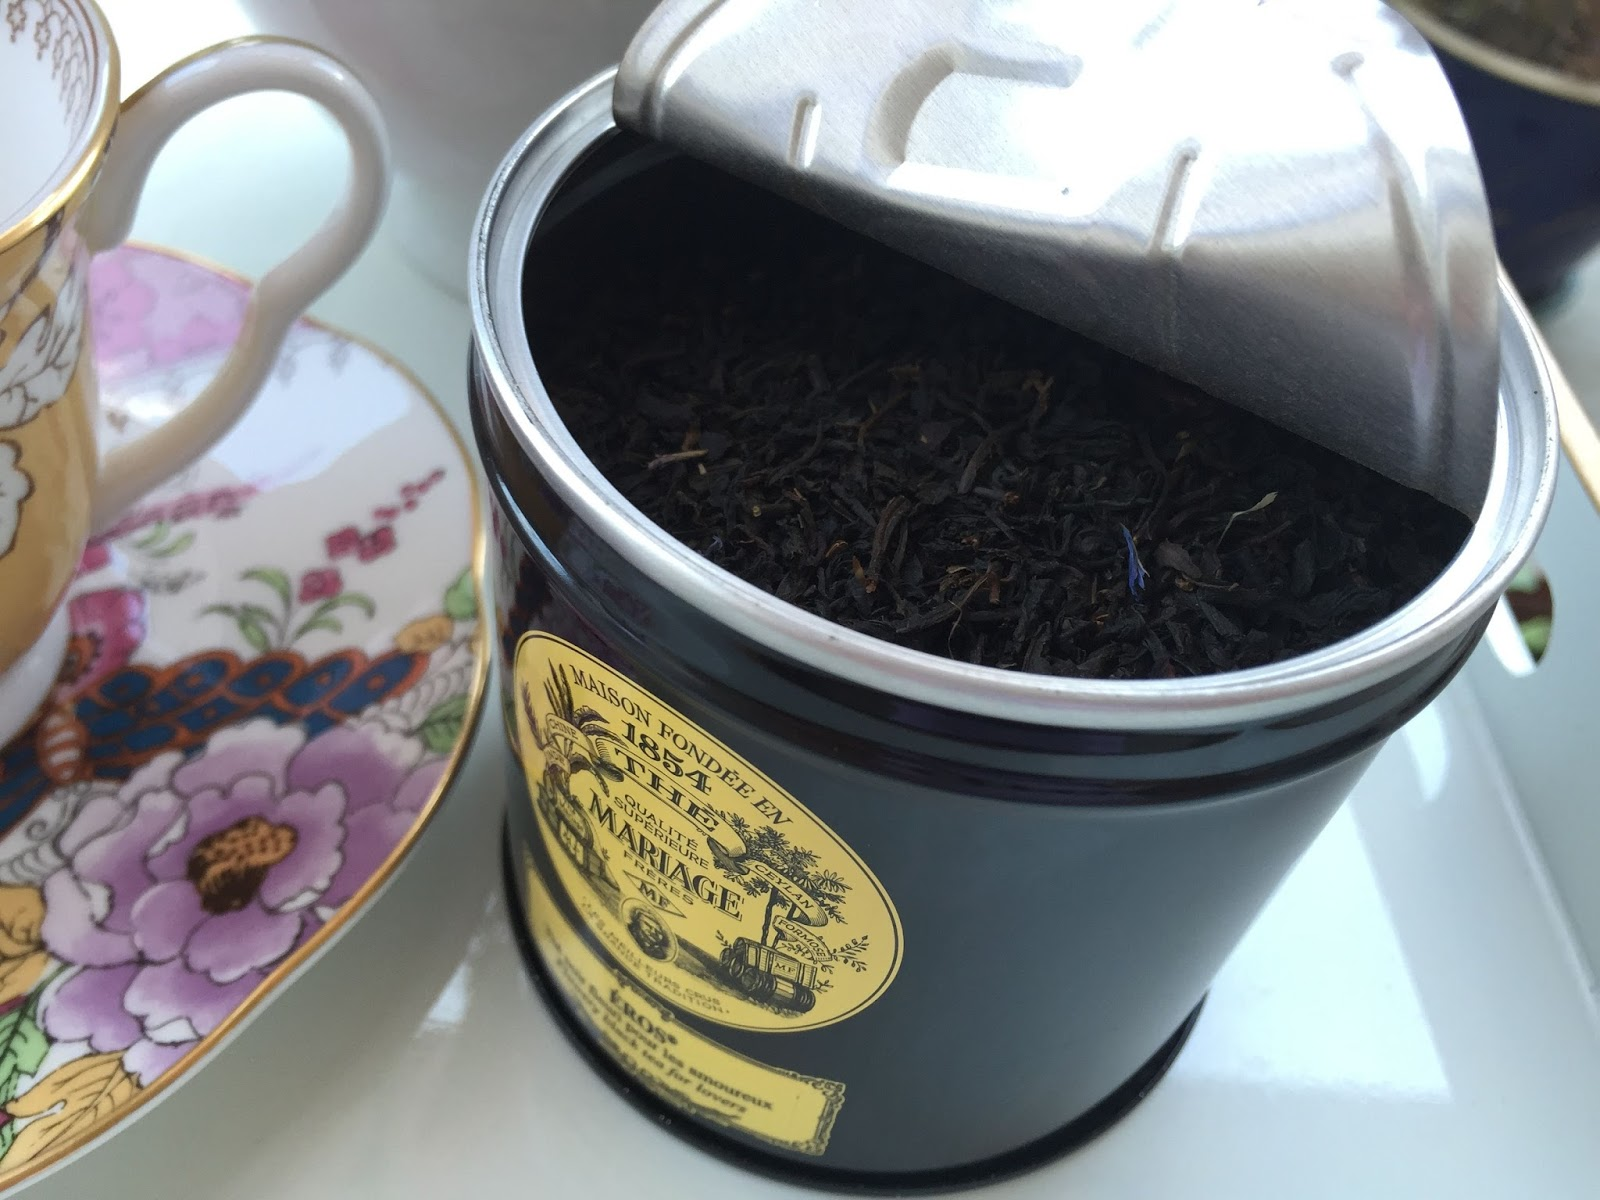 i love that mariage seals its tea tins so well the aroma and taste are perfectly preserved - Mariage Freres Nancy